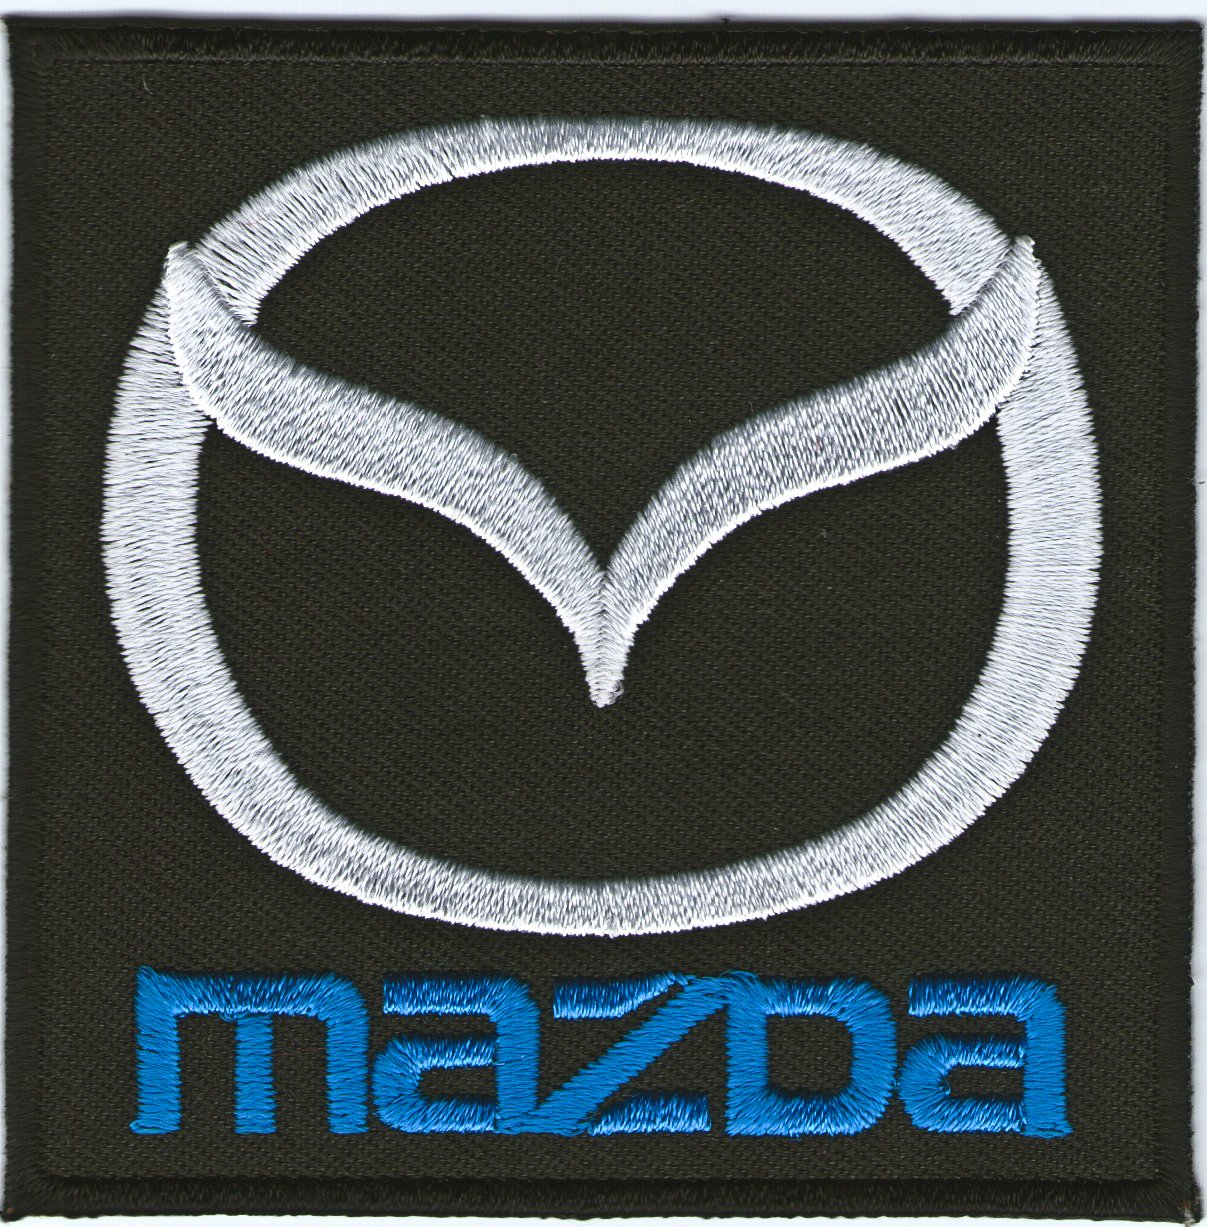 Amazon mazda embroidered iron on sew on patch iron on symbol amazon mazda embroidered iron on sew on patch iron on symbol badge emblem logo sign patch embroidery everything else biocorpaavc Gallery